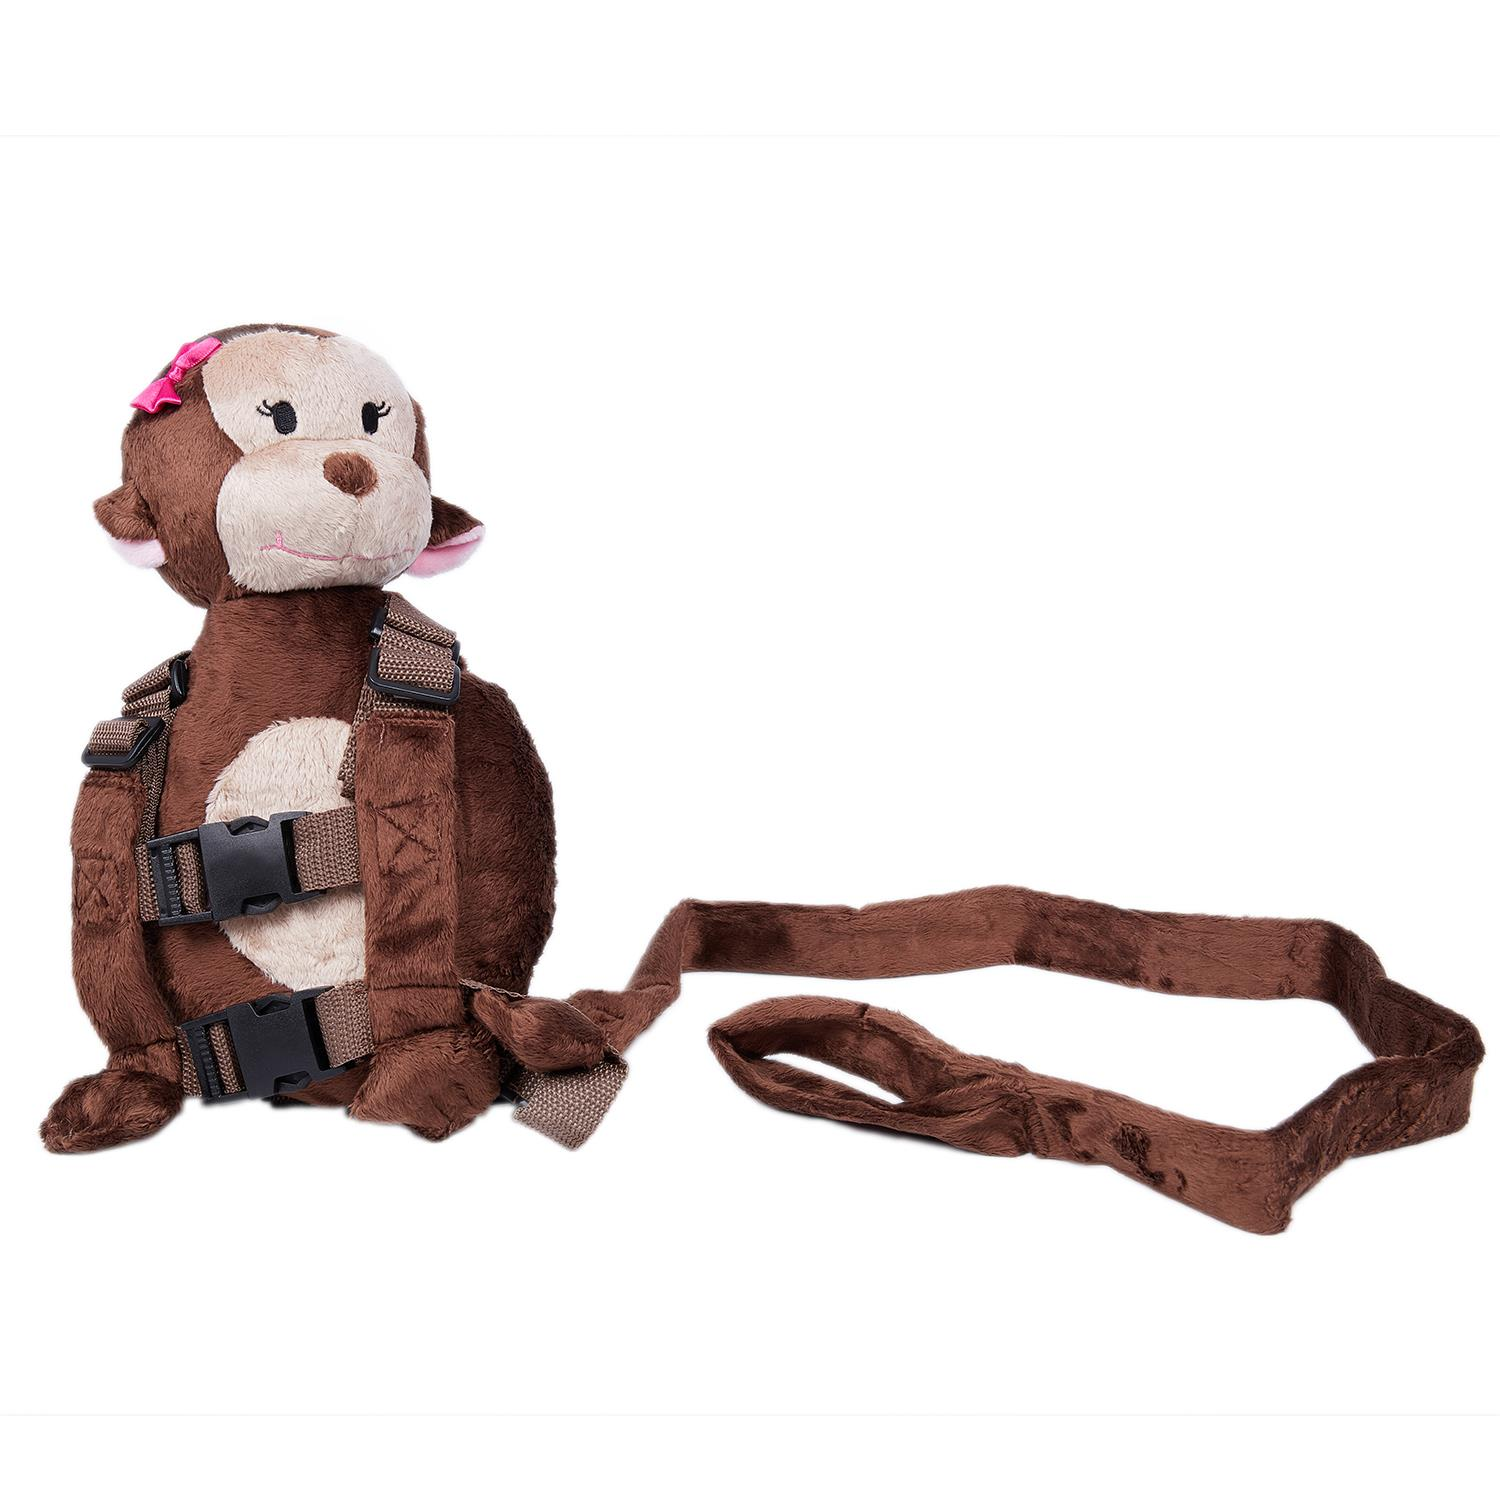 LCLL-Safety Harness Leash Strap Baby Kids Toddler Walking Cosplay Backpack Reins Bag, Monkey 3